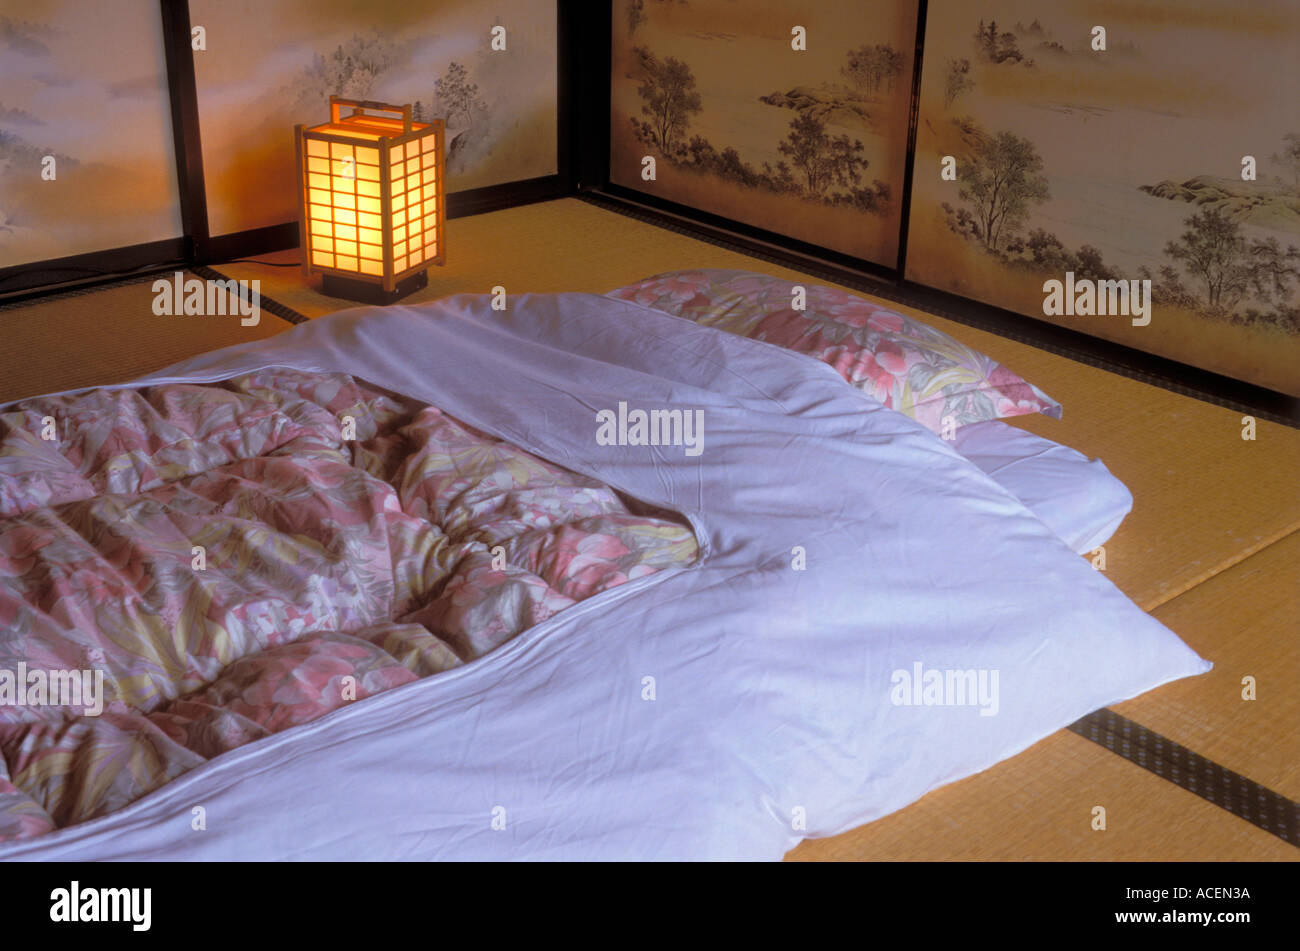 Futon Japan Traditional Japanese Bedding Known As A Futon Is Used On